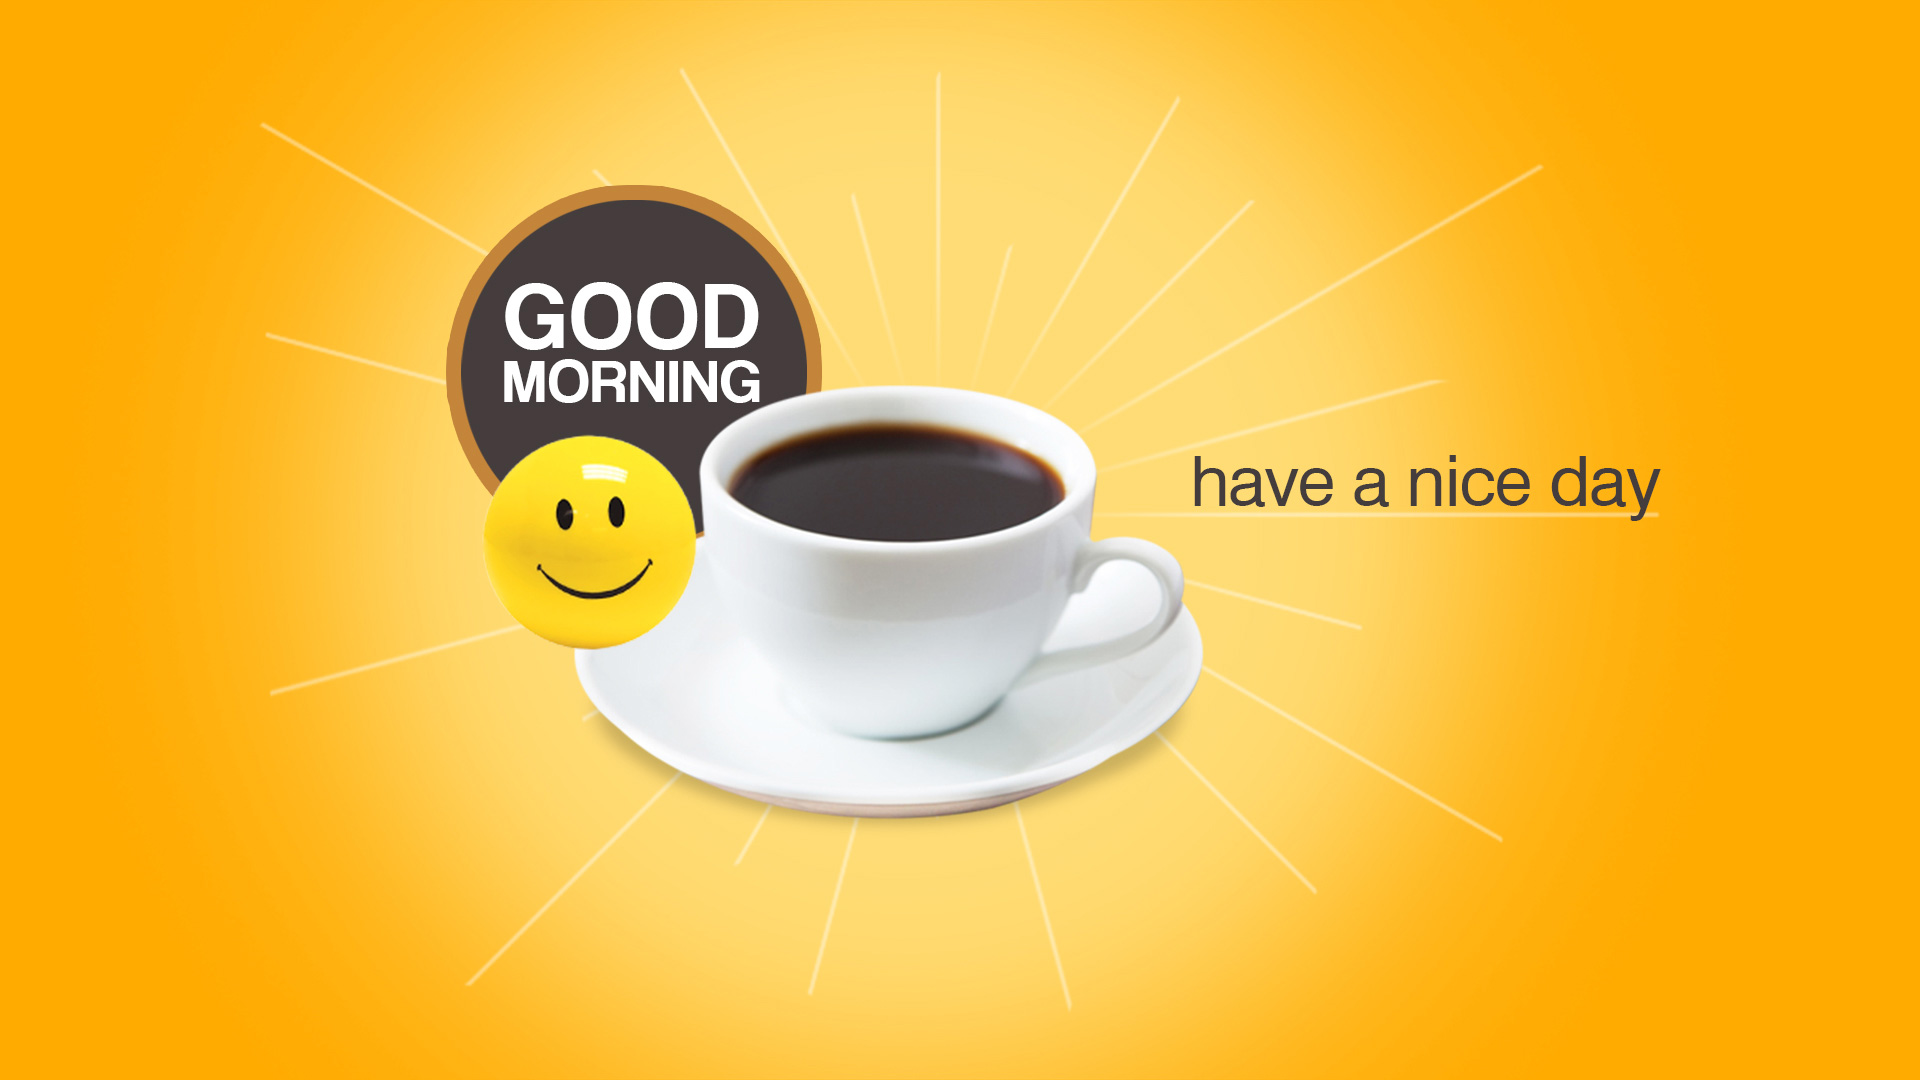 Good Morning Greetings Good Morning Whats App Status Good Morning